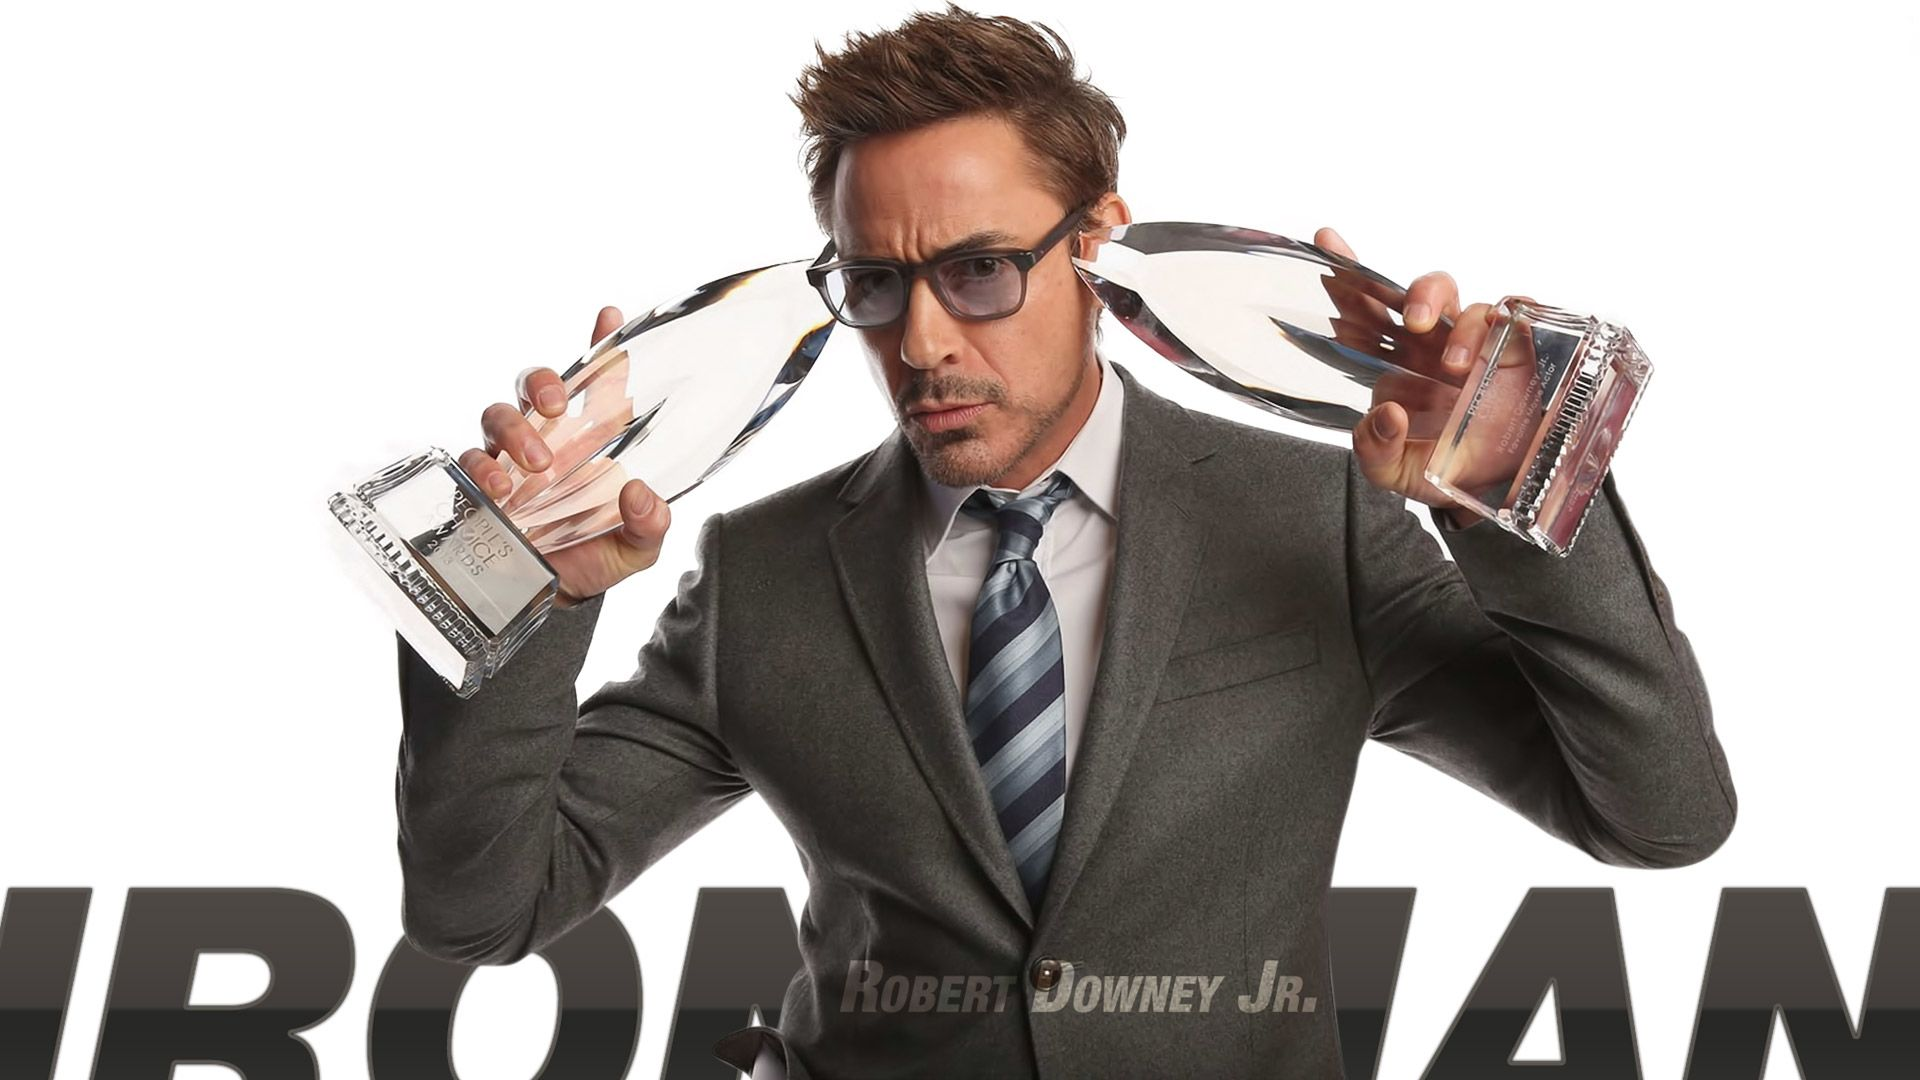 Robert downey jr hd clipart